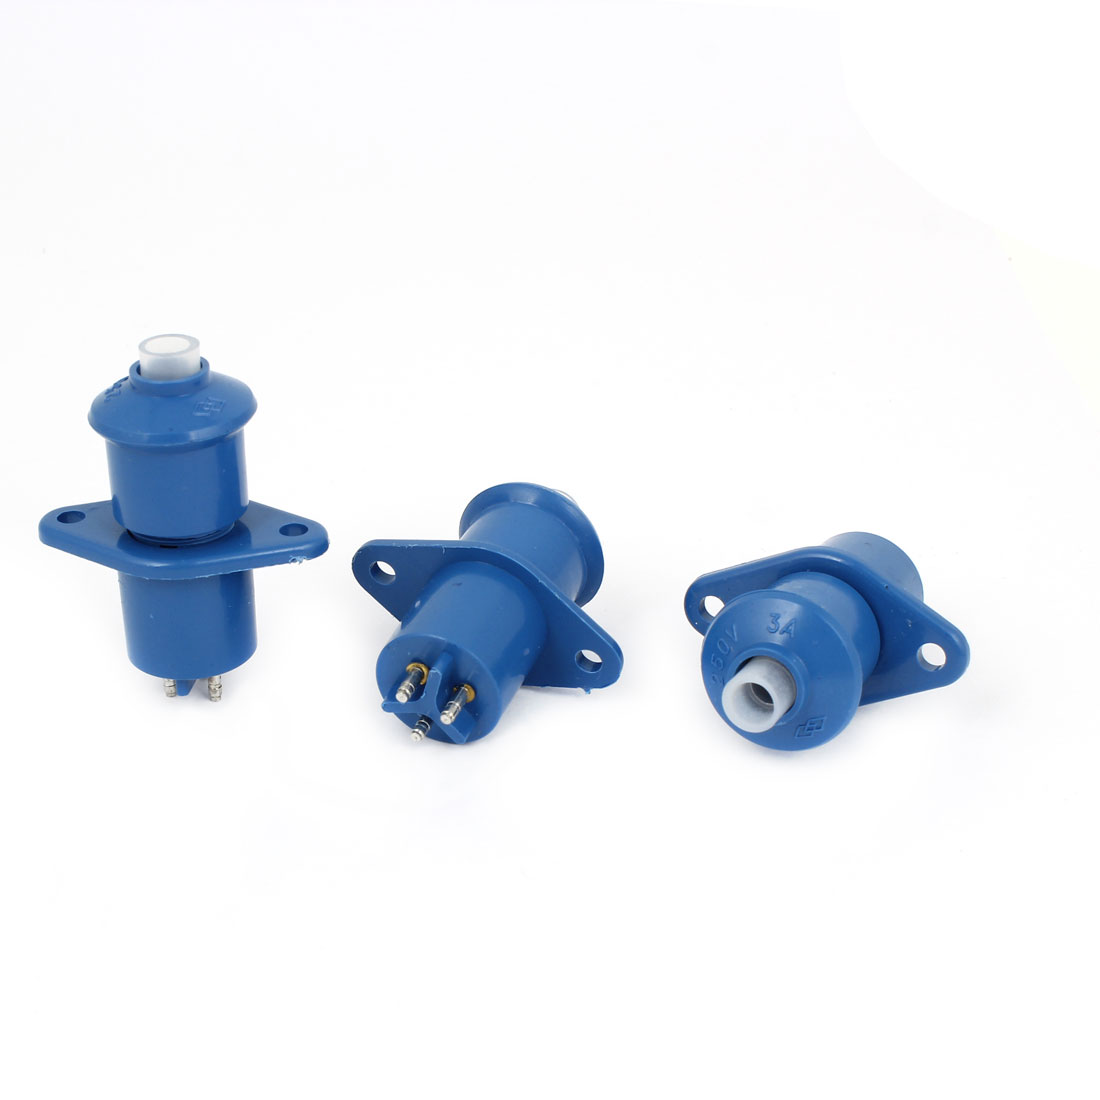 AC 250V 3A Blue 3P Male Female Power Socket Connector 3pcs